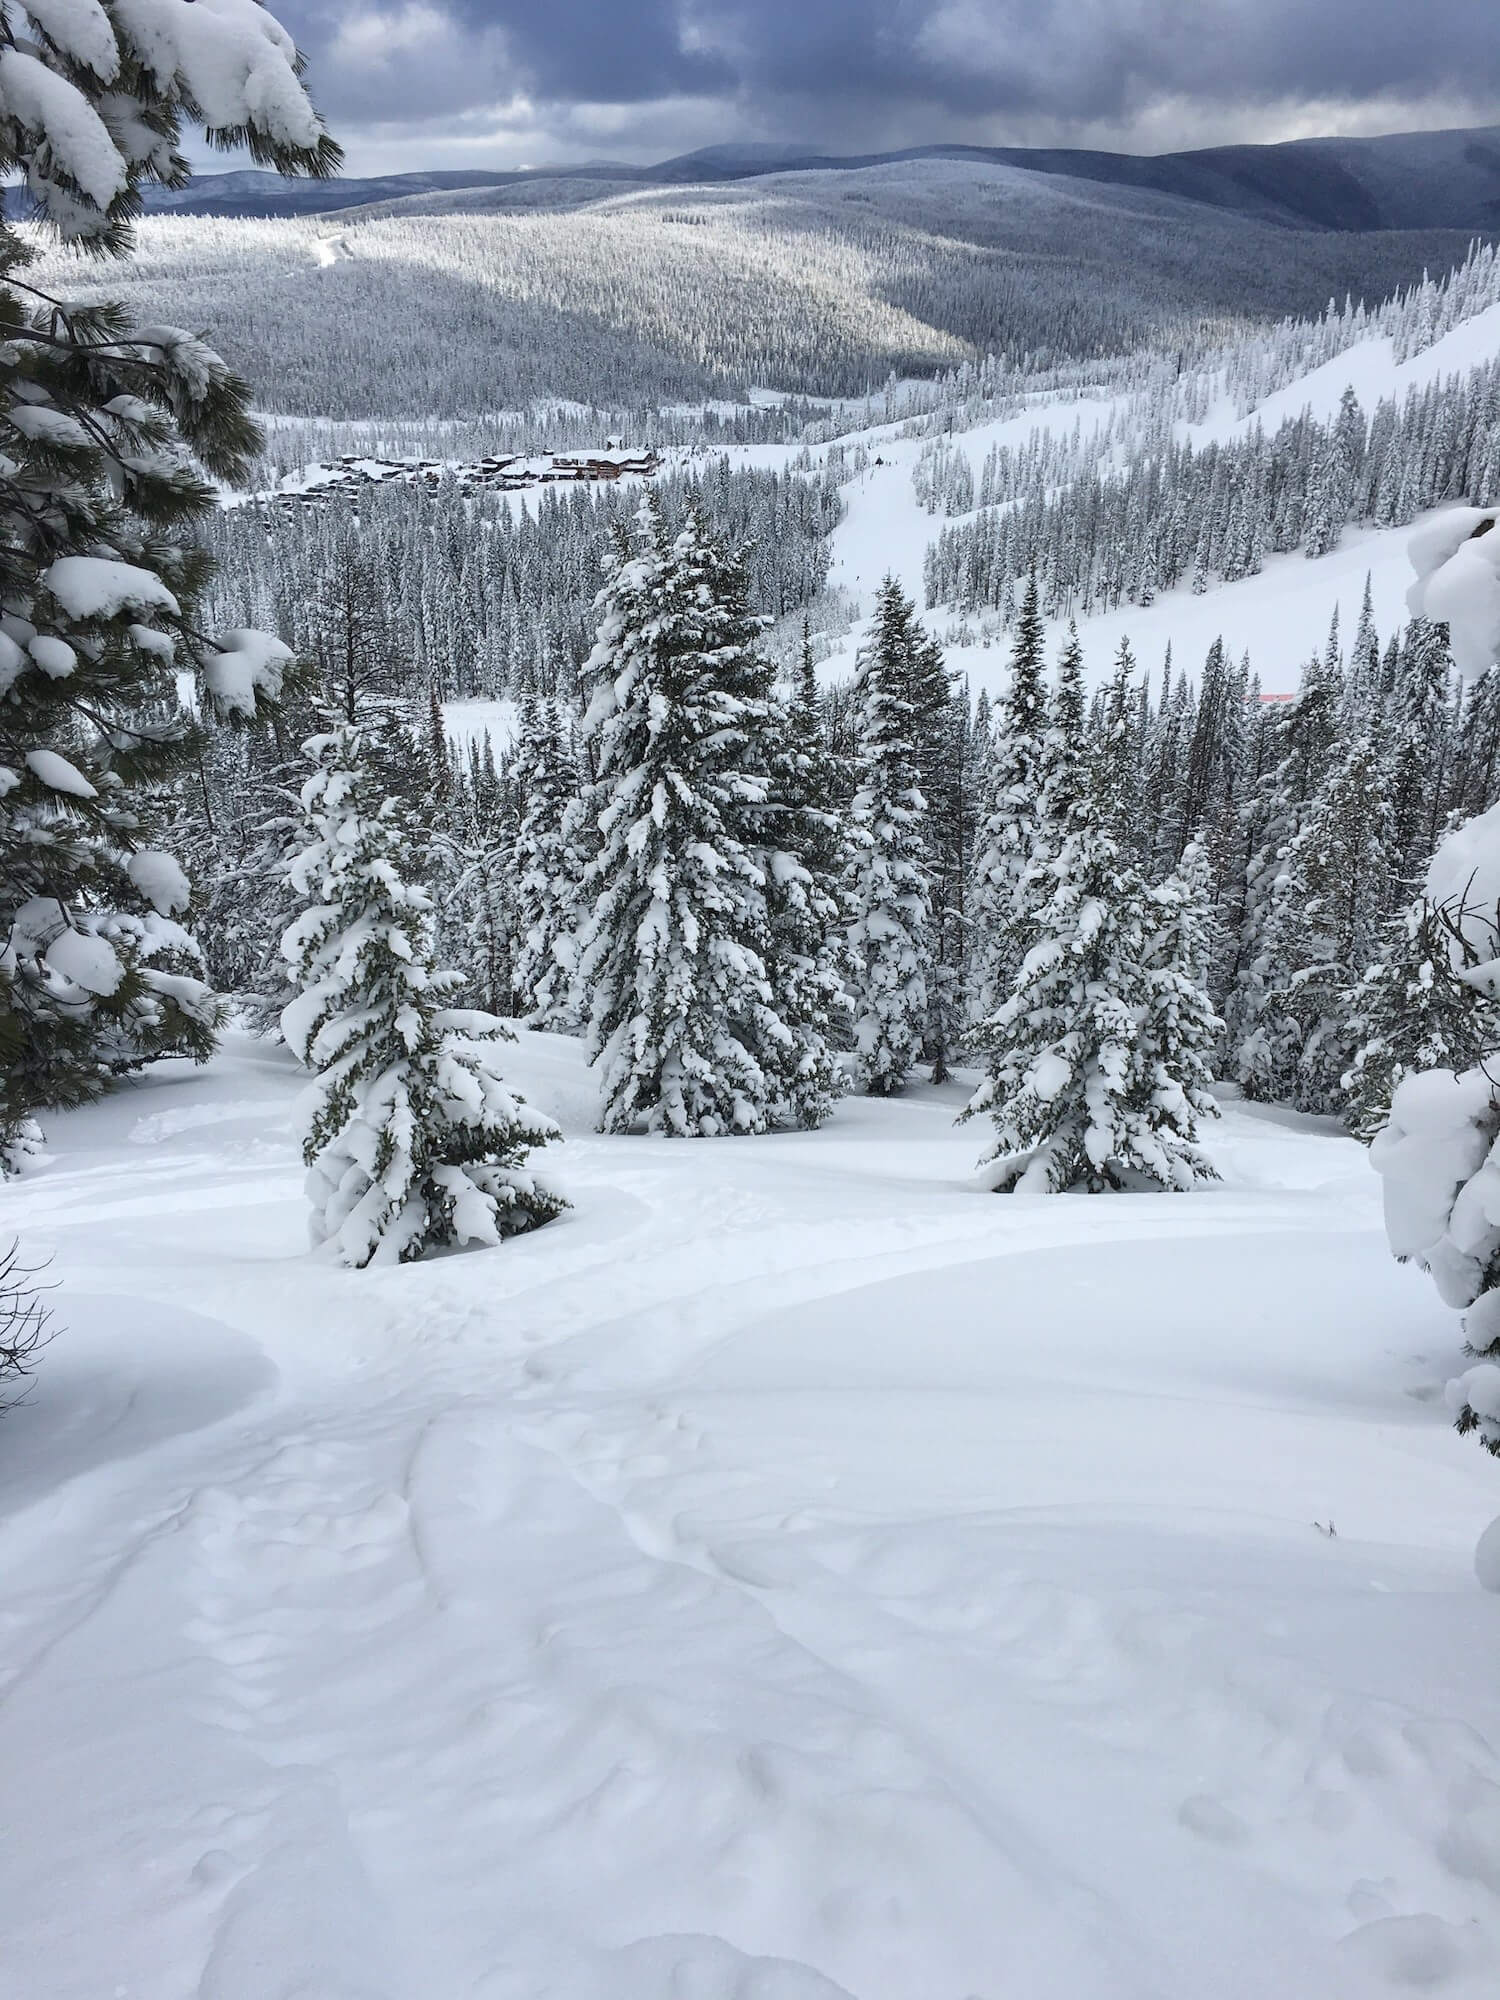 Powder skiing on Christmas as Lost Trail Ski Resort in Montana